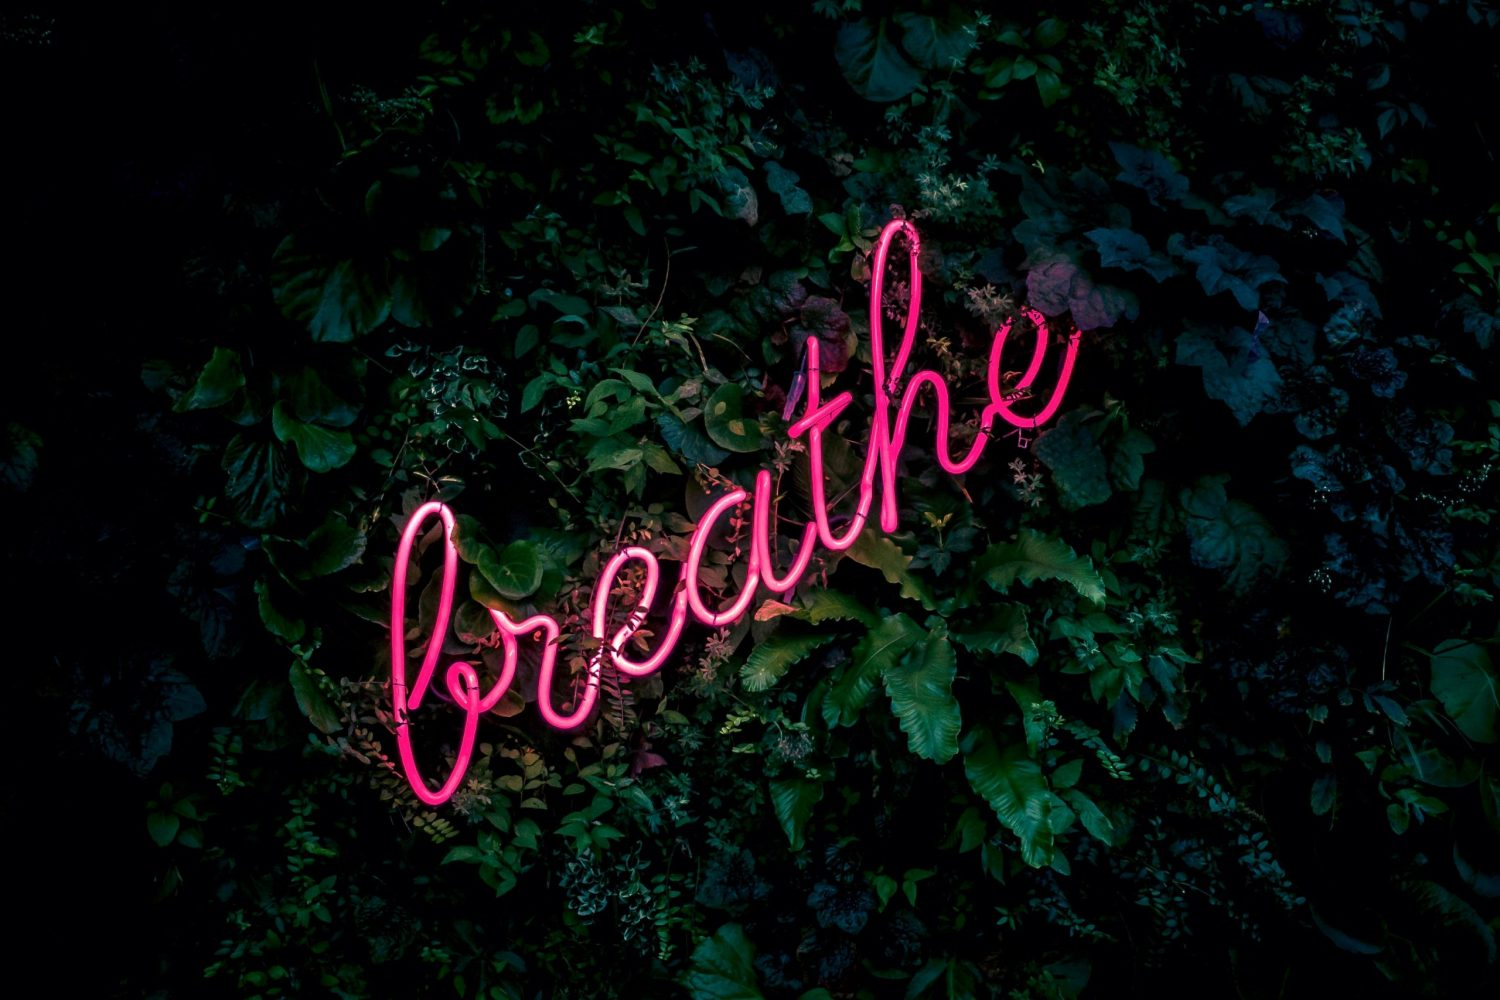 Let's just breathe